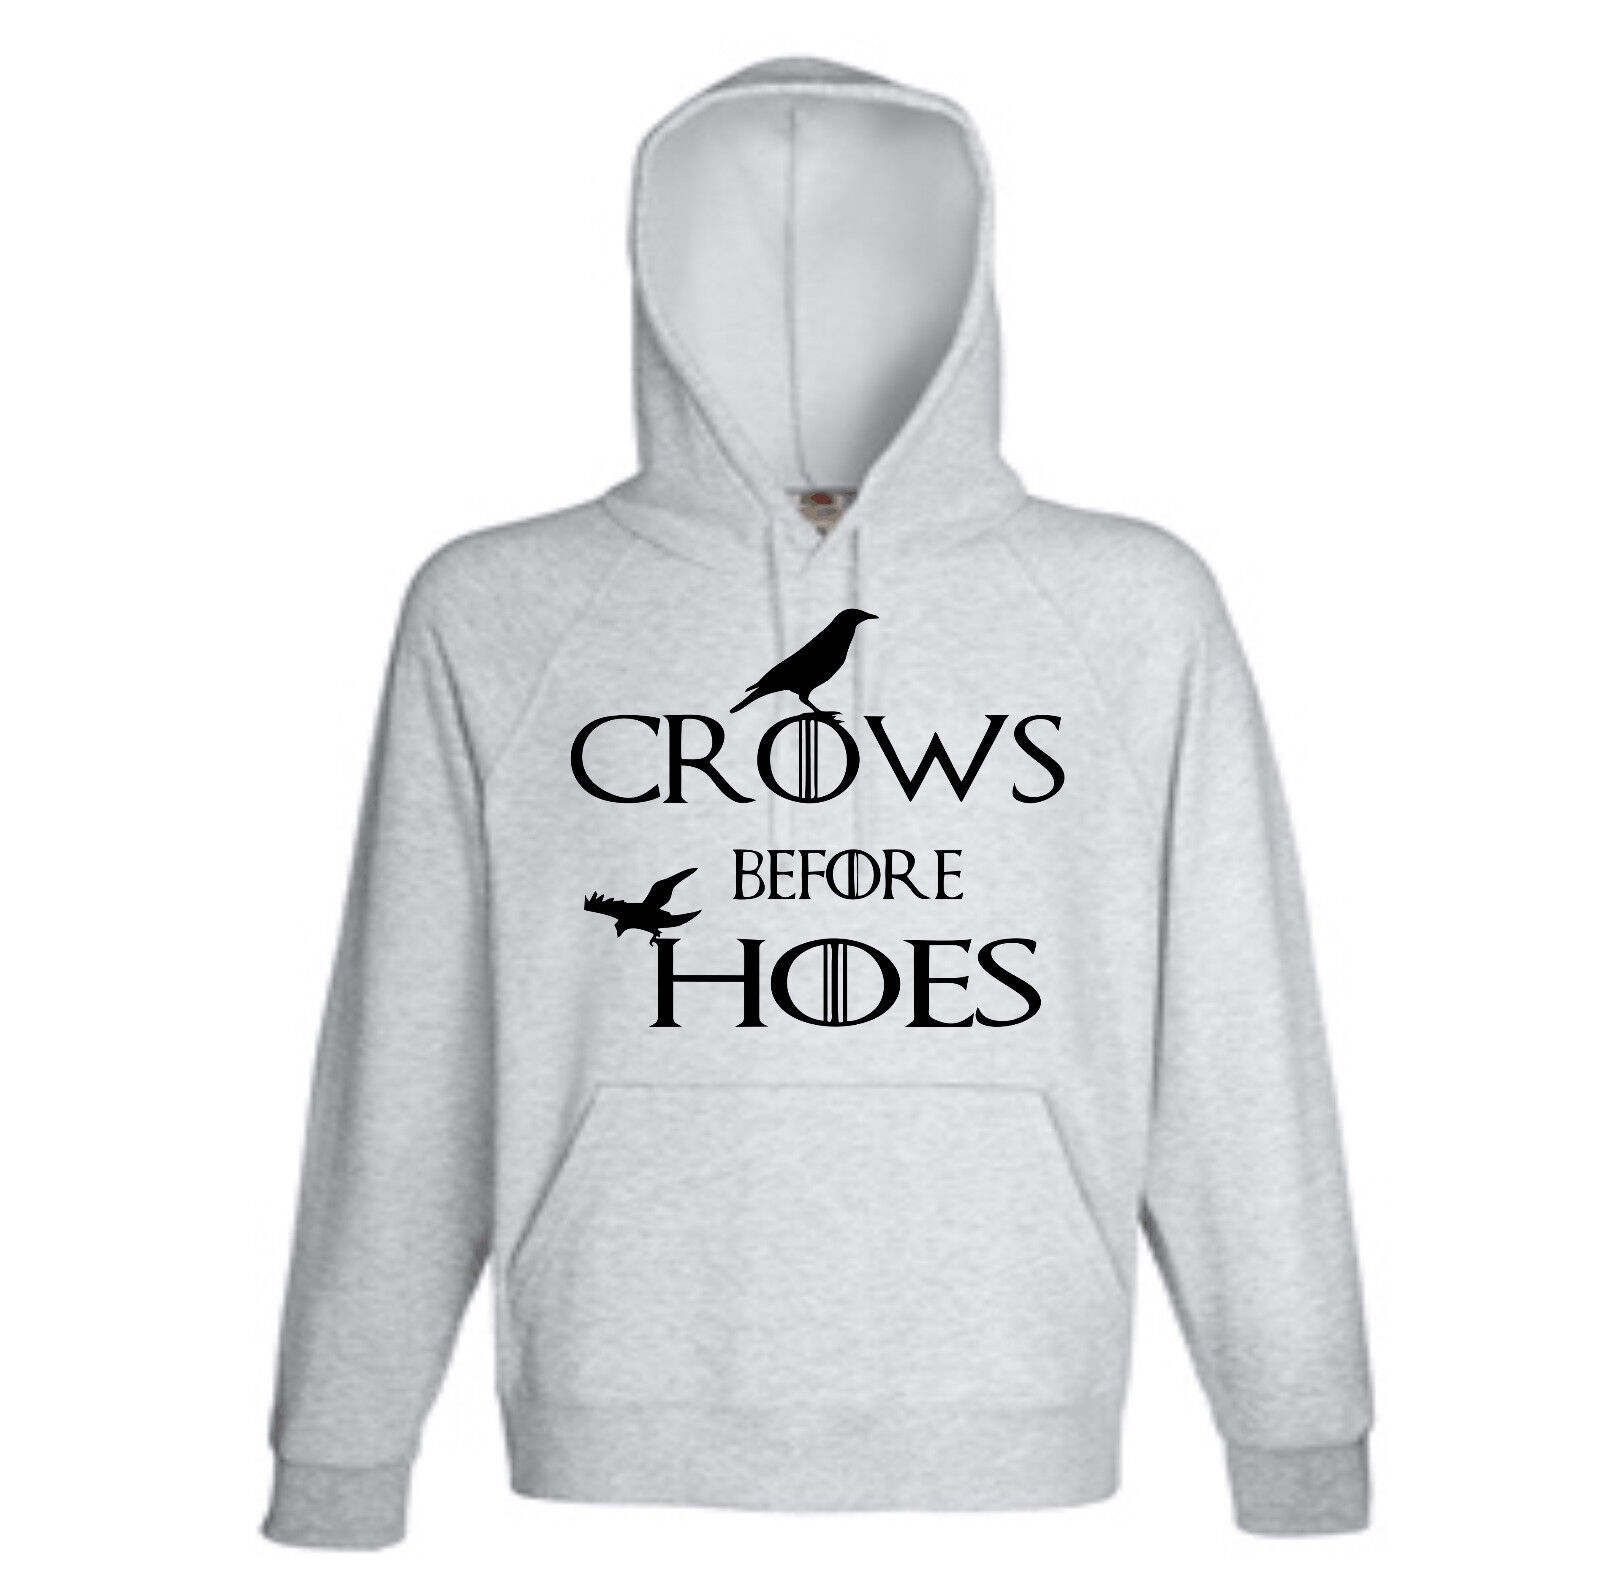 CROWS BEFORE HOES GAME OF THRONES INSPIRED HOODIES ALL SIZES AND COLOURS